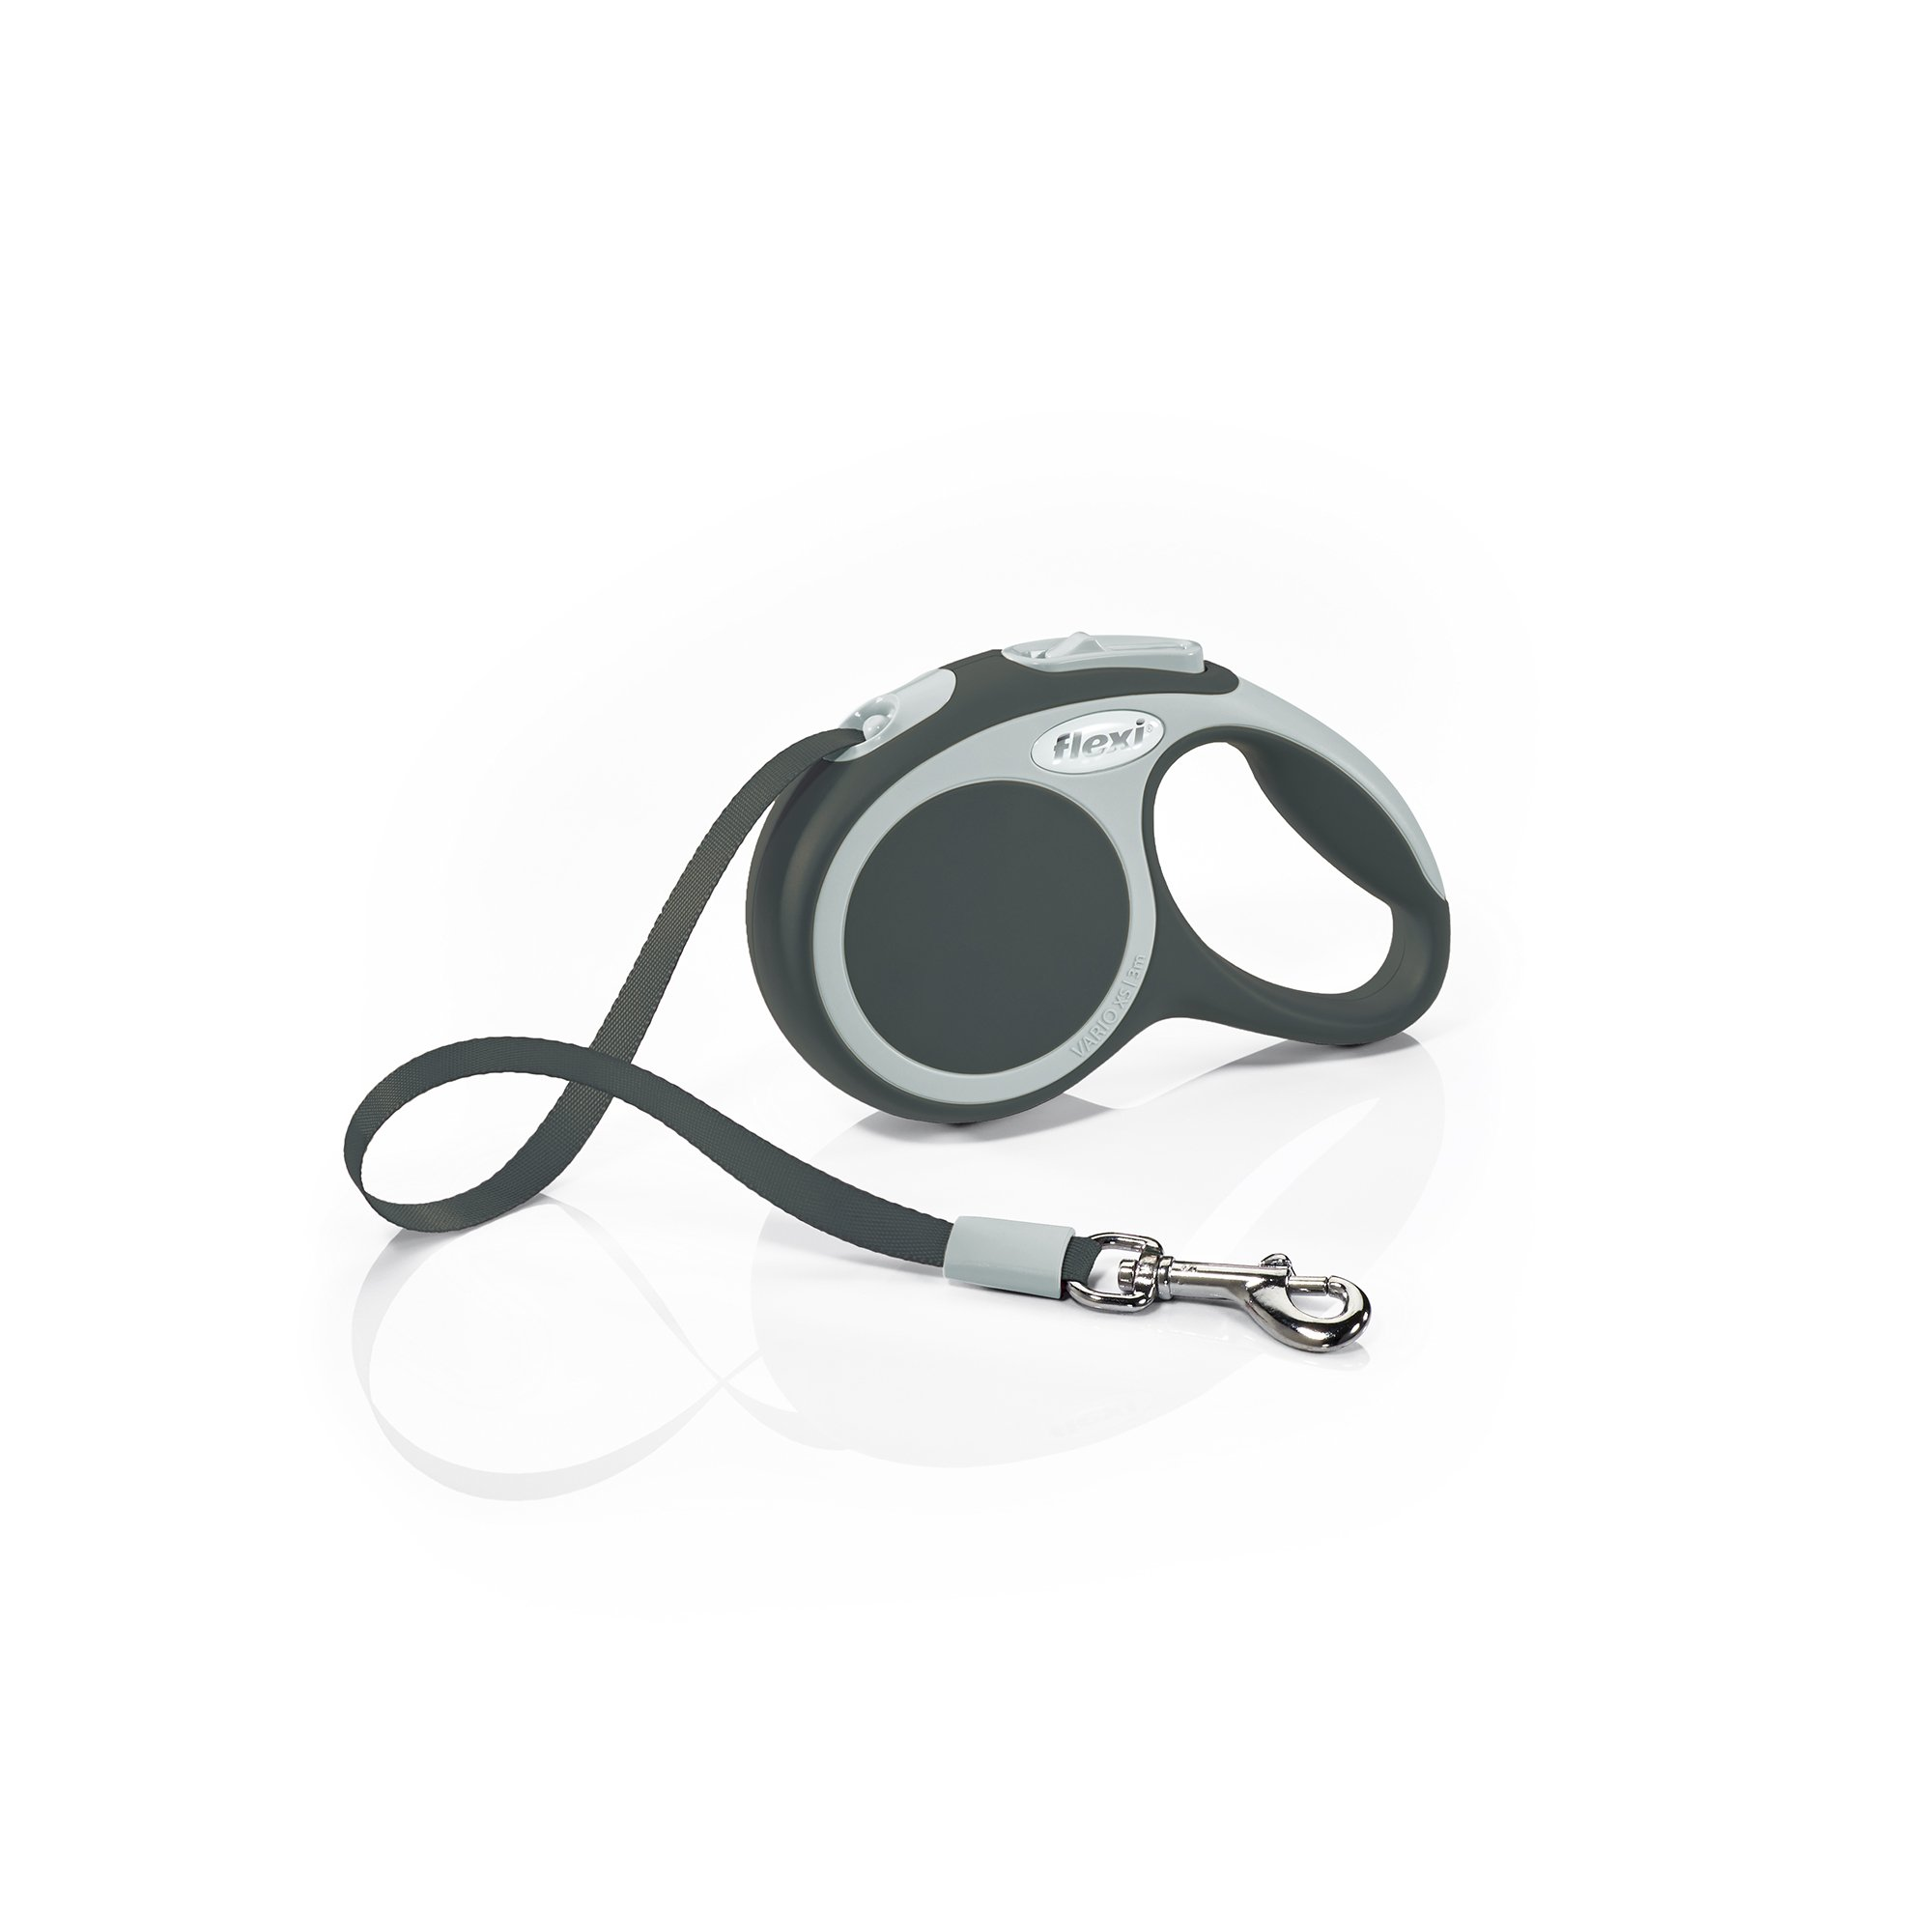 Flexi Vario Retractable Dog Leash (Tape), 10 ft, Extra-Small, Anthracite